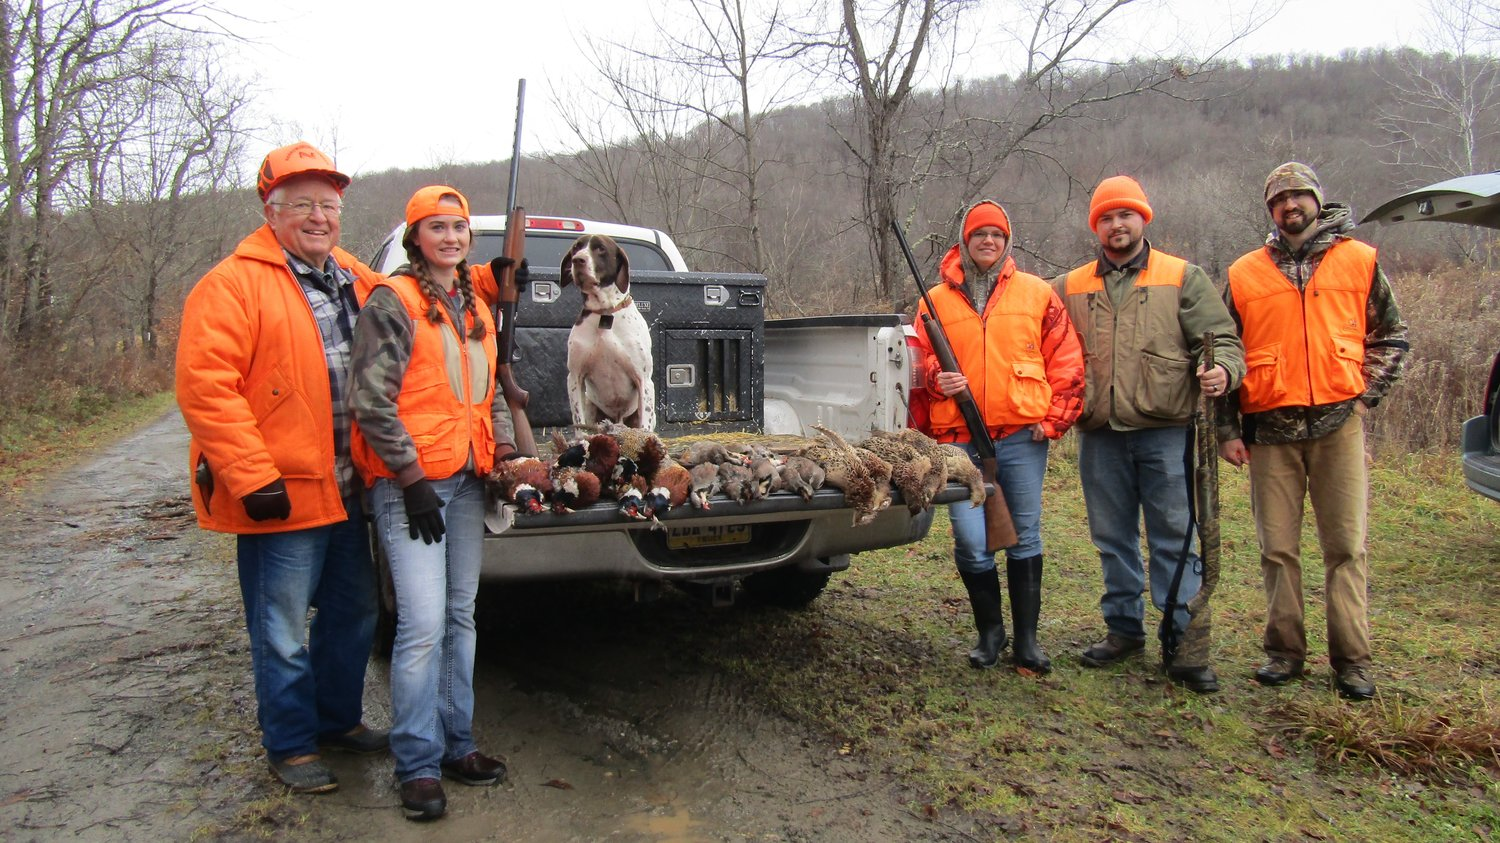 The family lines up to boast a tailgate full of pheasants and chukars harvested Thanksgiving morning.